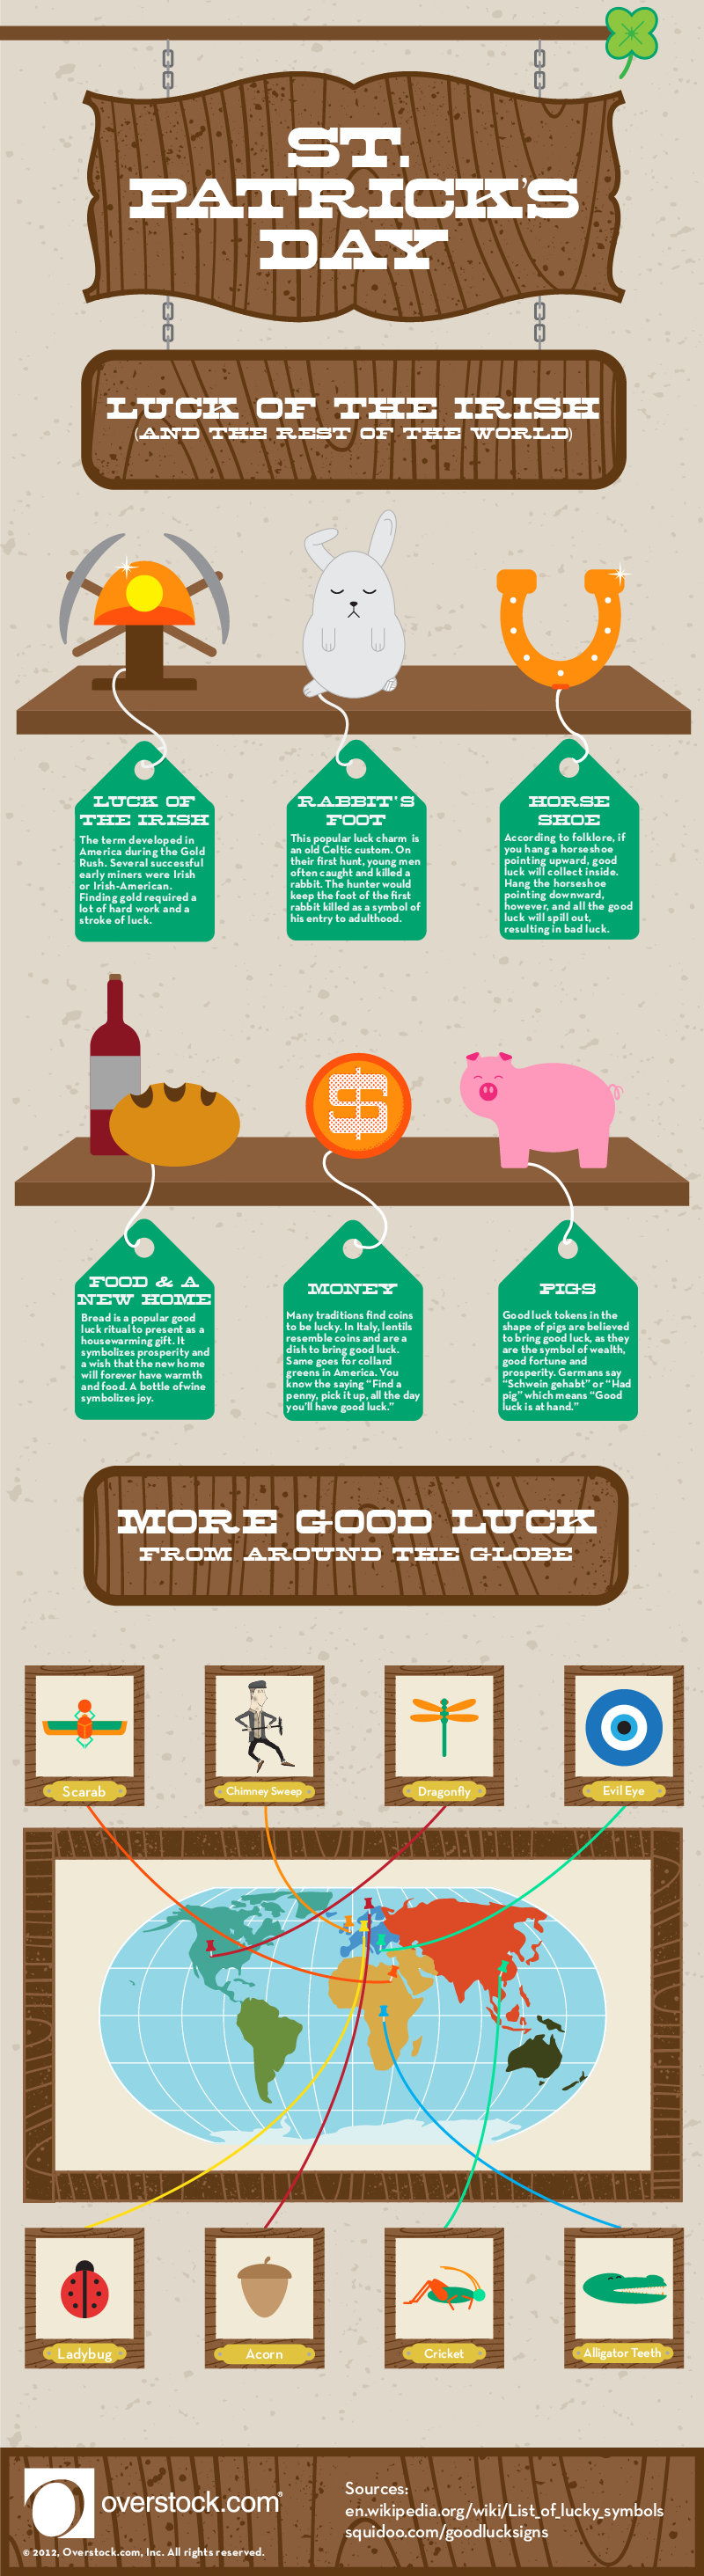 St. Patrick's Day Infographic from Overstock.com